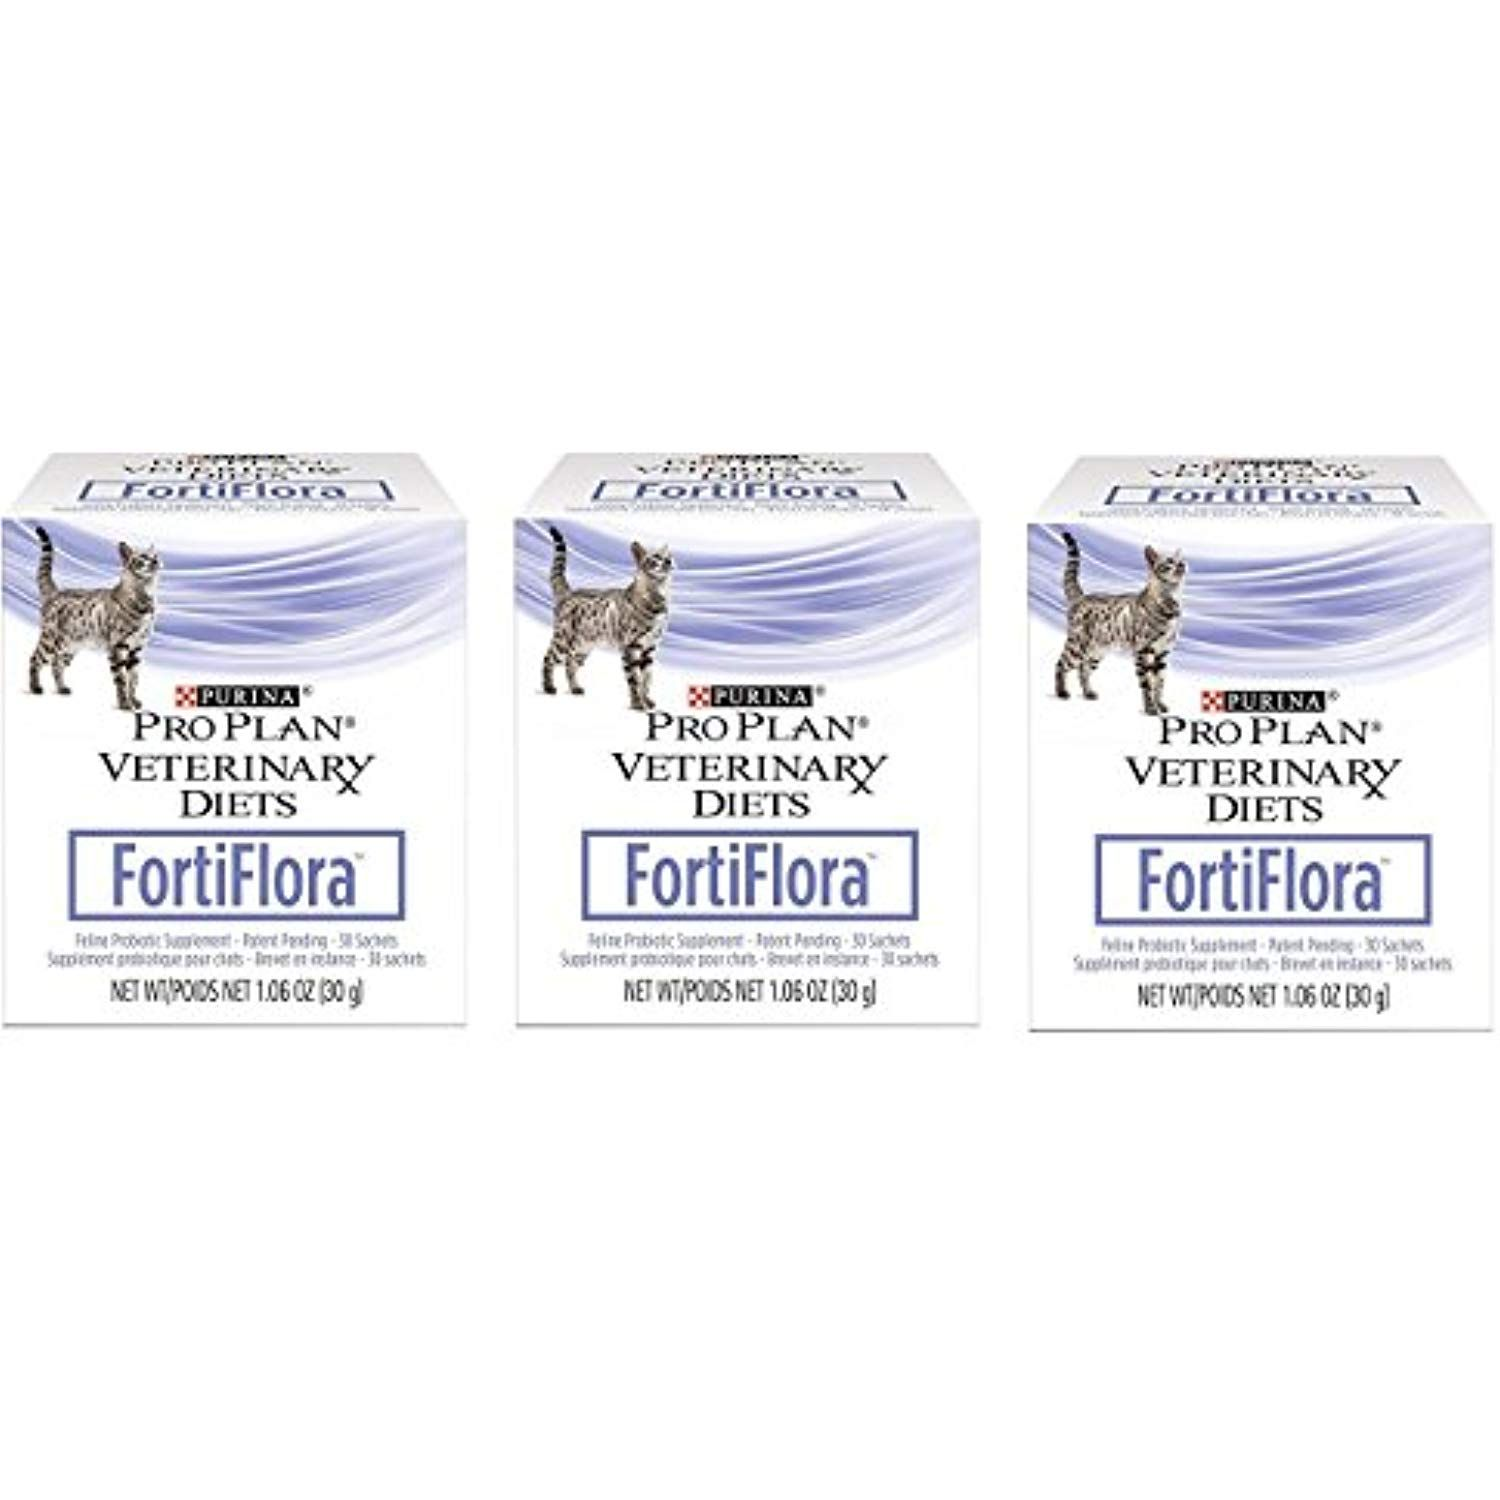 Purina Fortiflora Cat Nutritional Supplement 3 Pack 30 Sachets Each You Can Get More Details By Clicki Nutritional Supplements Nutrition Probiotic Brands